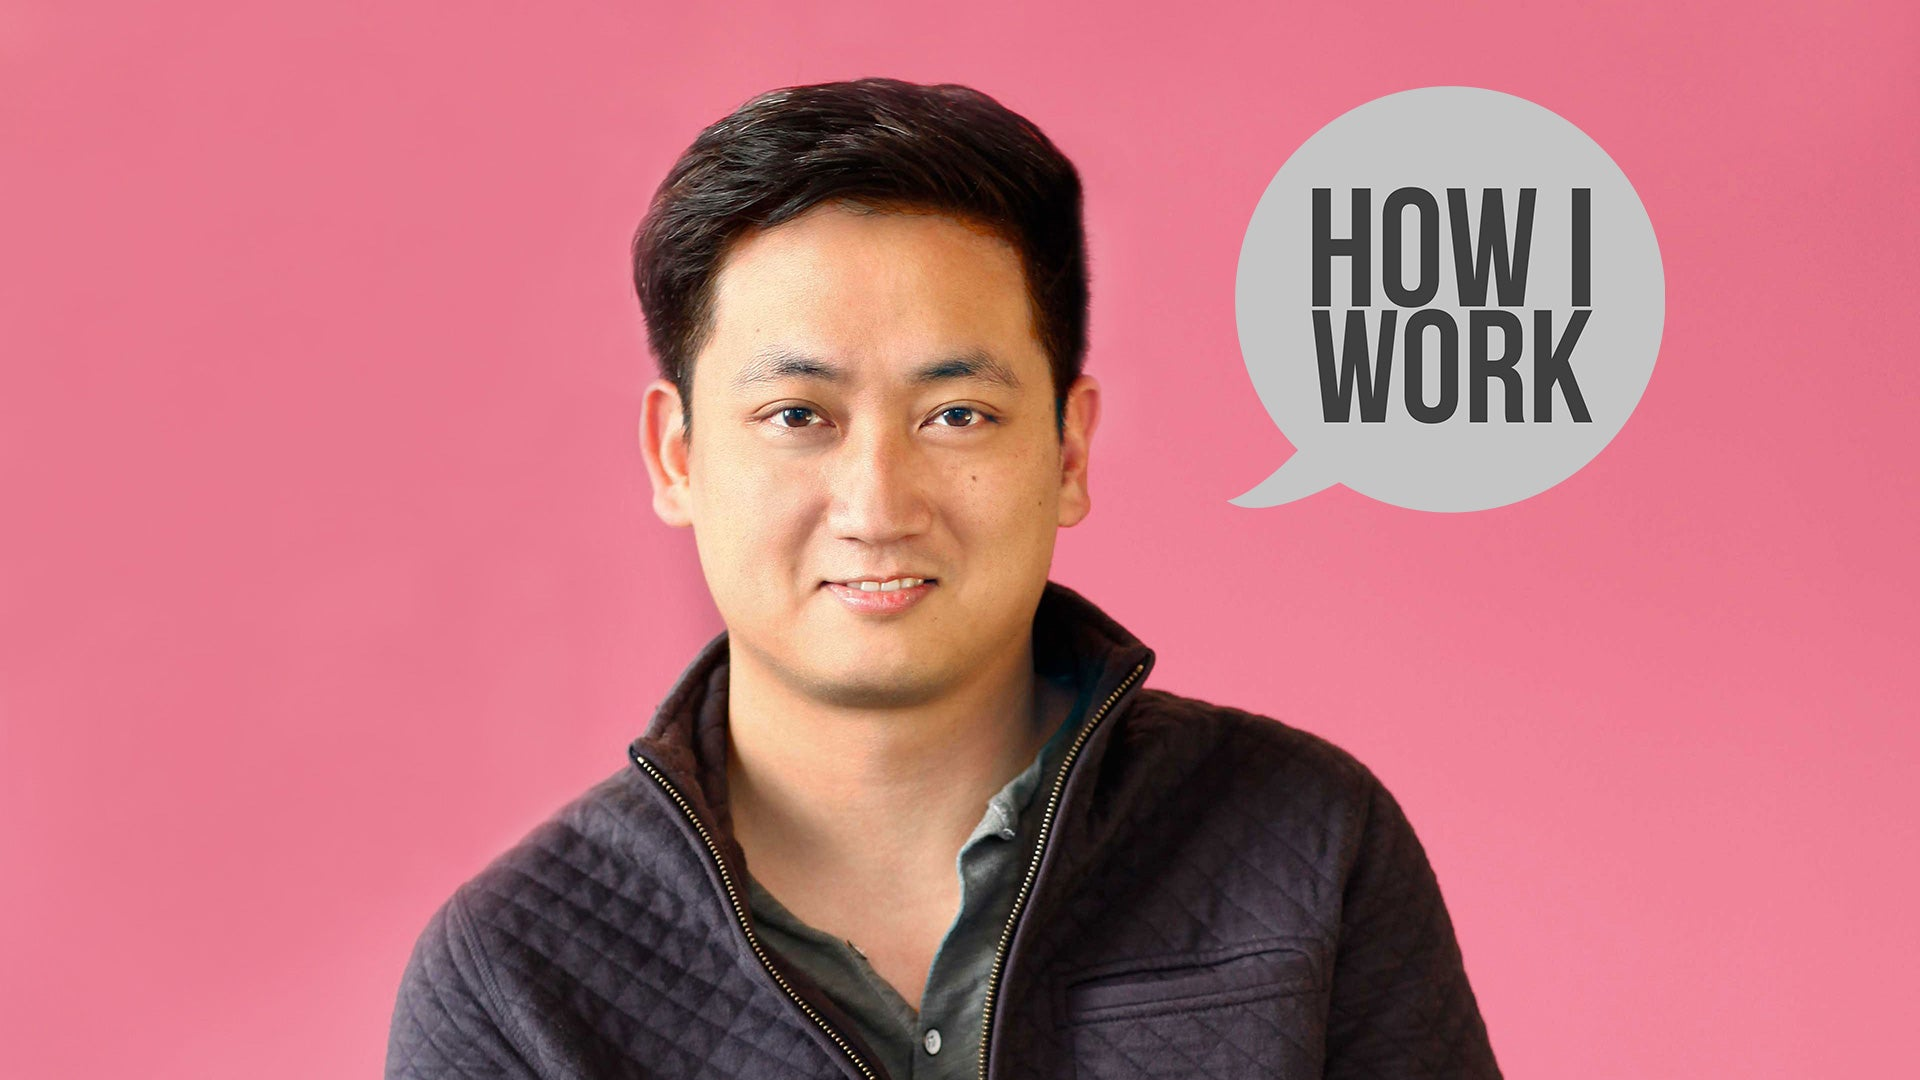 I'm NerdWallet Co-Founder Tim Chen, And This Is How I Work